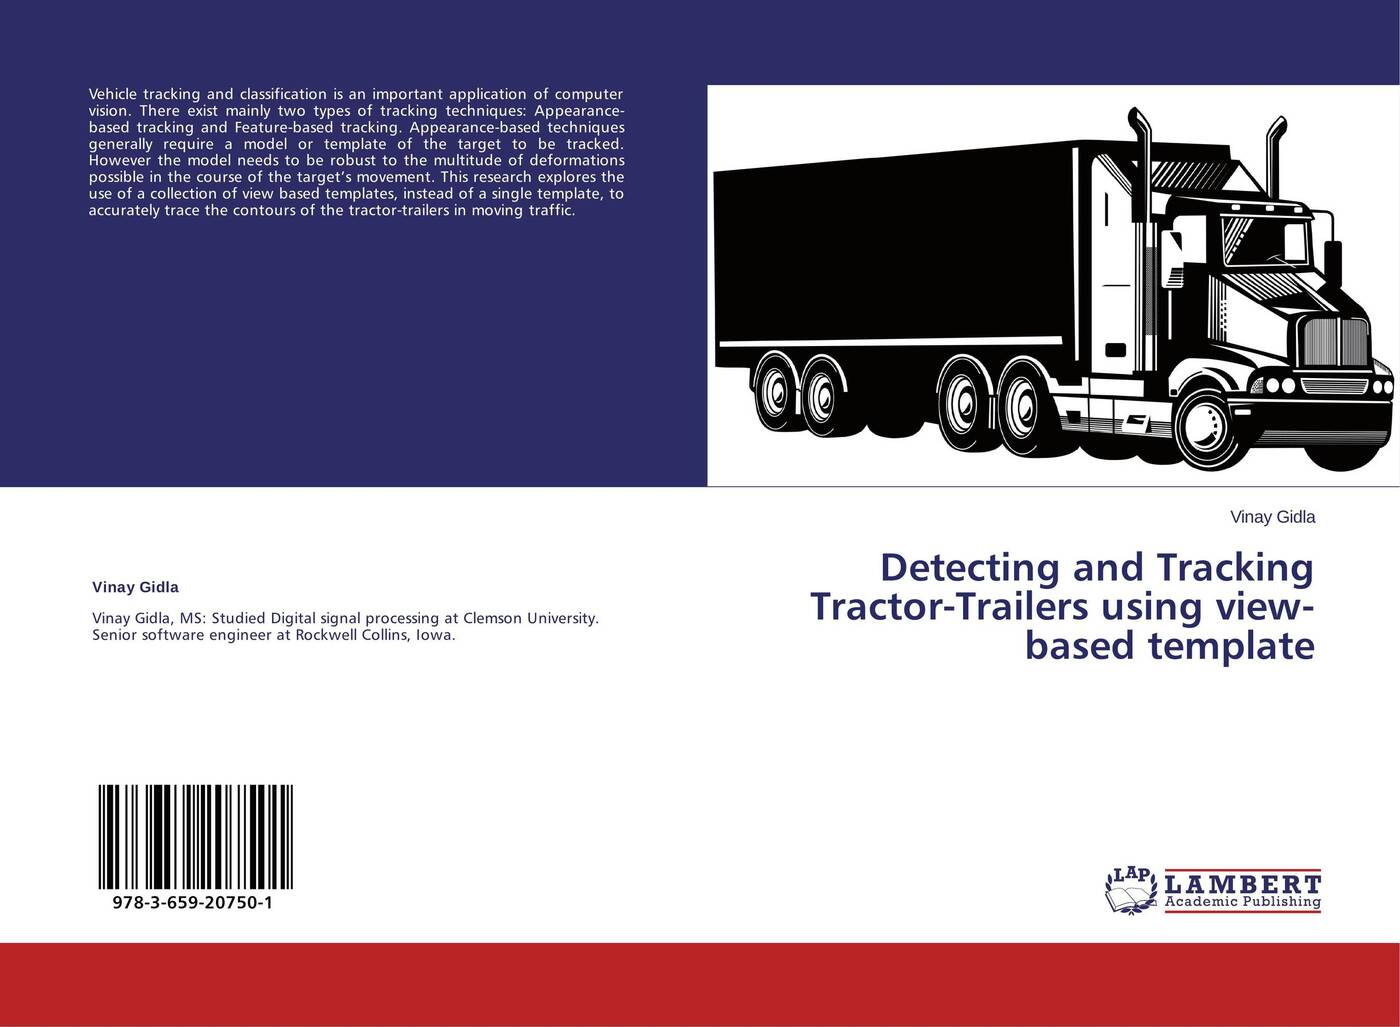 Vinay Gidla Detecting and Tracking Tractor-Trailers using view-based template